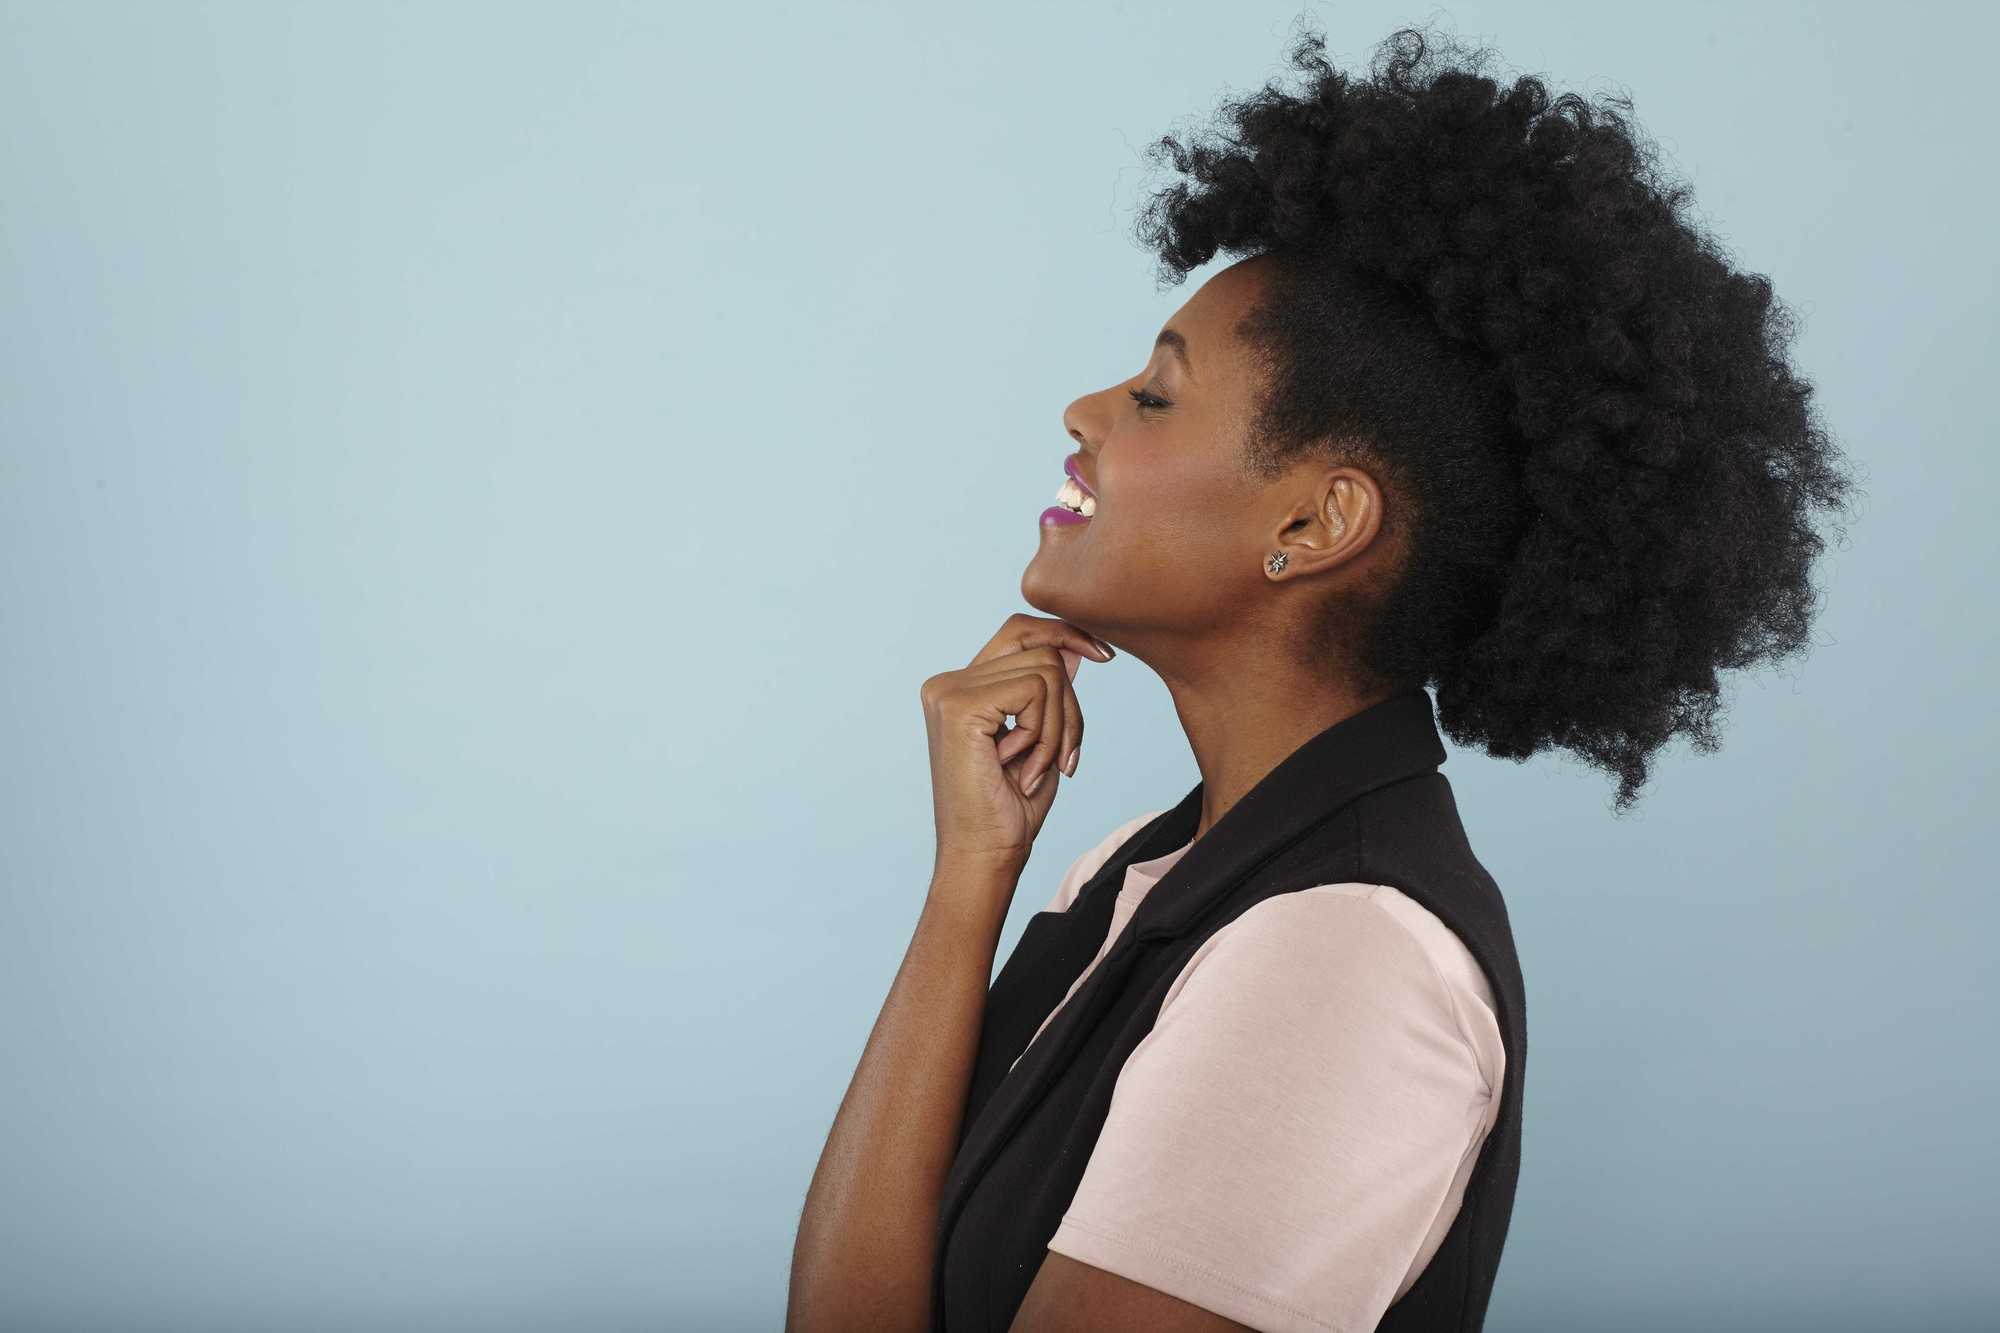 Easy natural hairstyles: Close up shot of model with natural hair frohawk hairstyle, wearing black and white top posing in a studio.